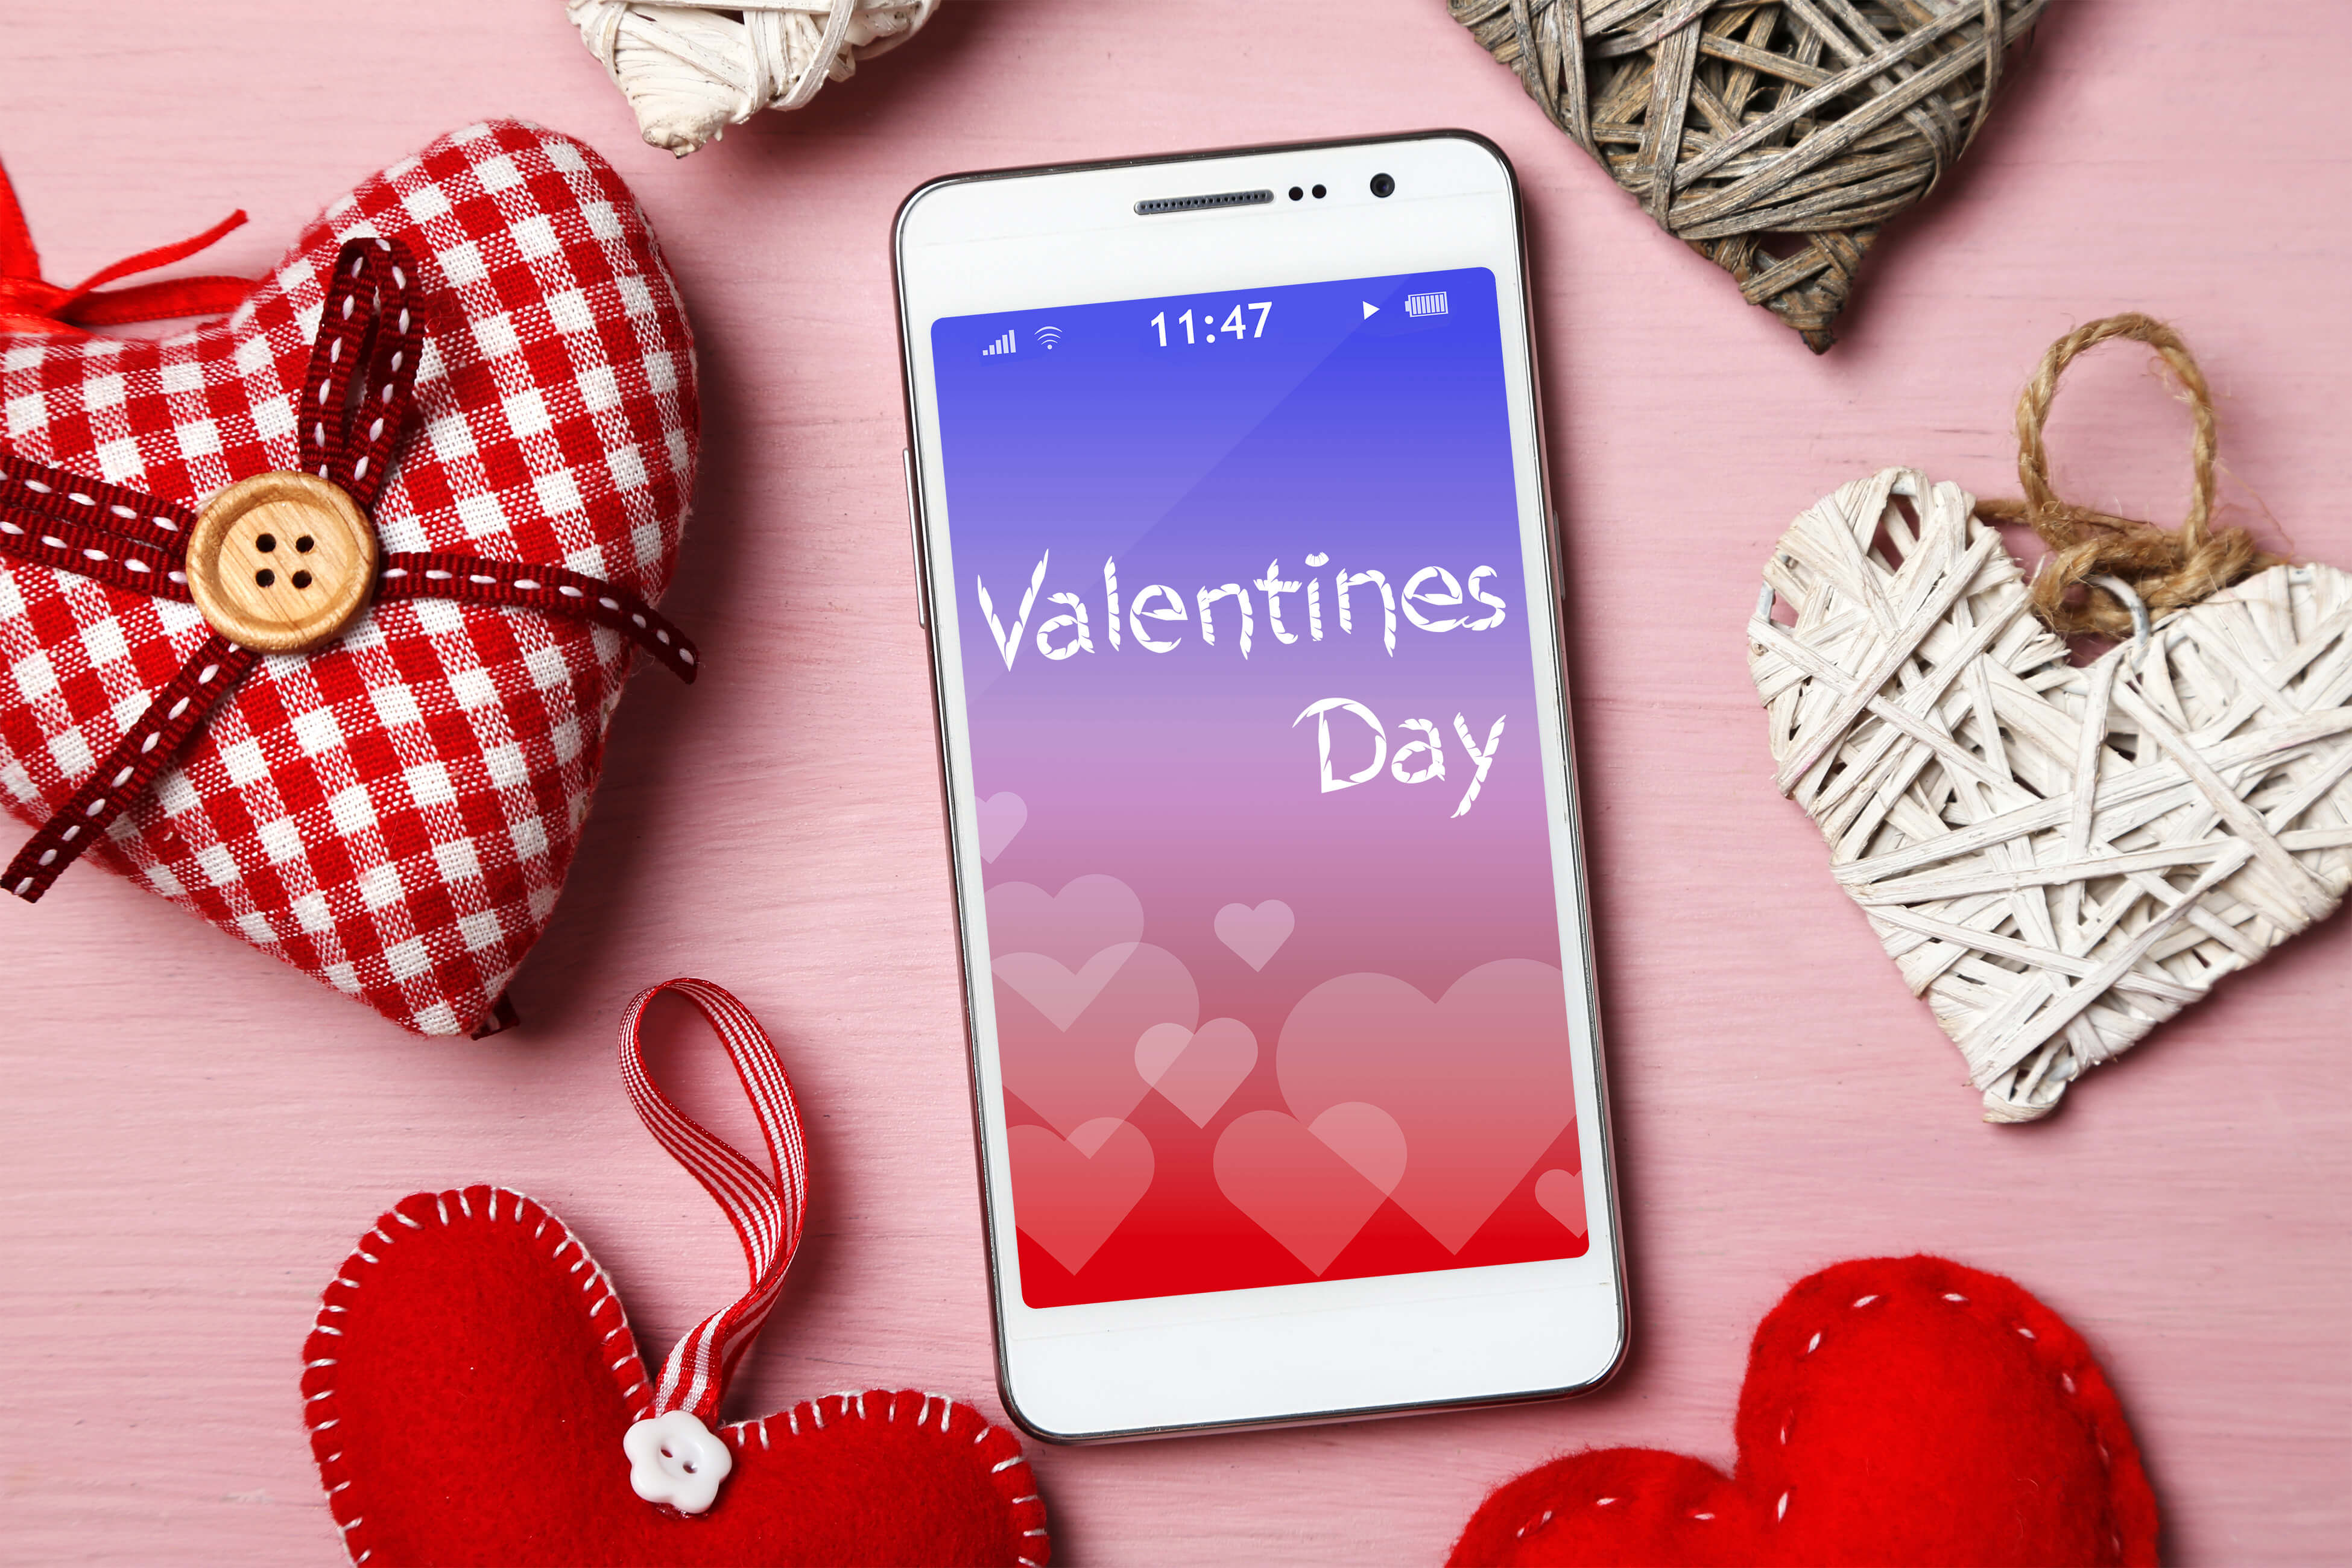 7 Great Valentine's Day Gifts for Your Favorite Techie